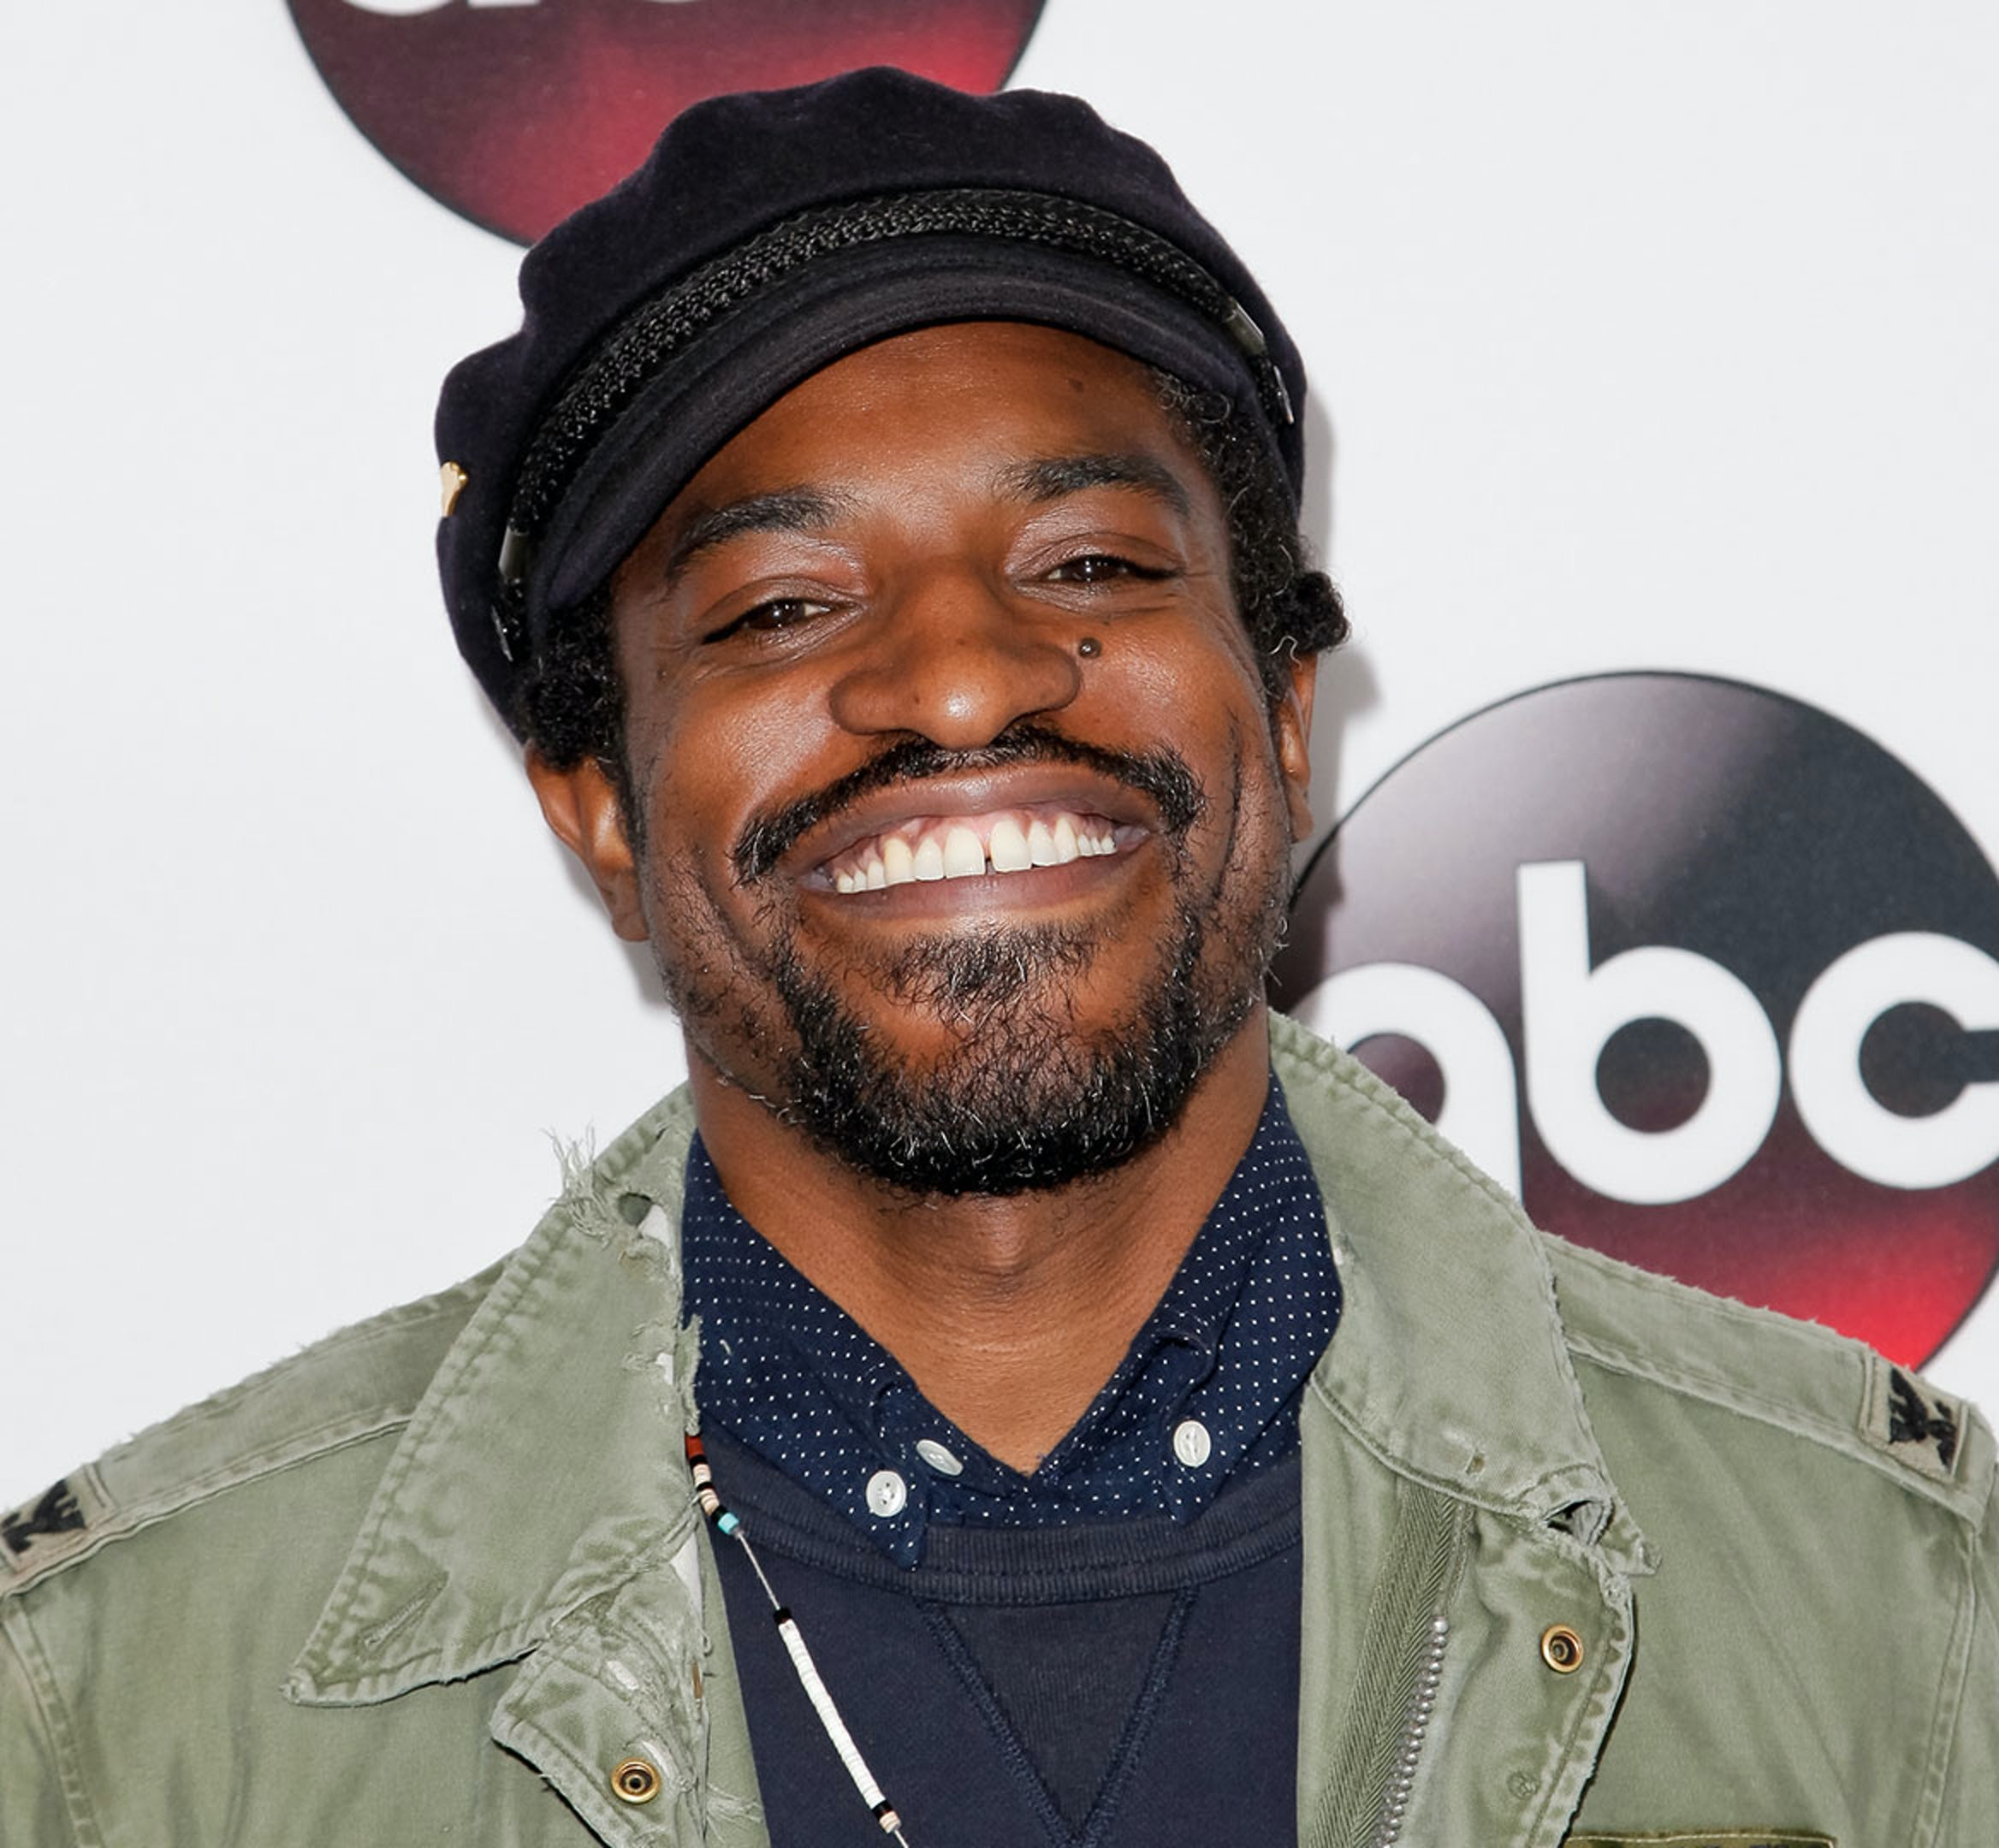 andre 3000 networth hero